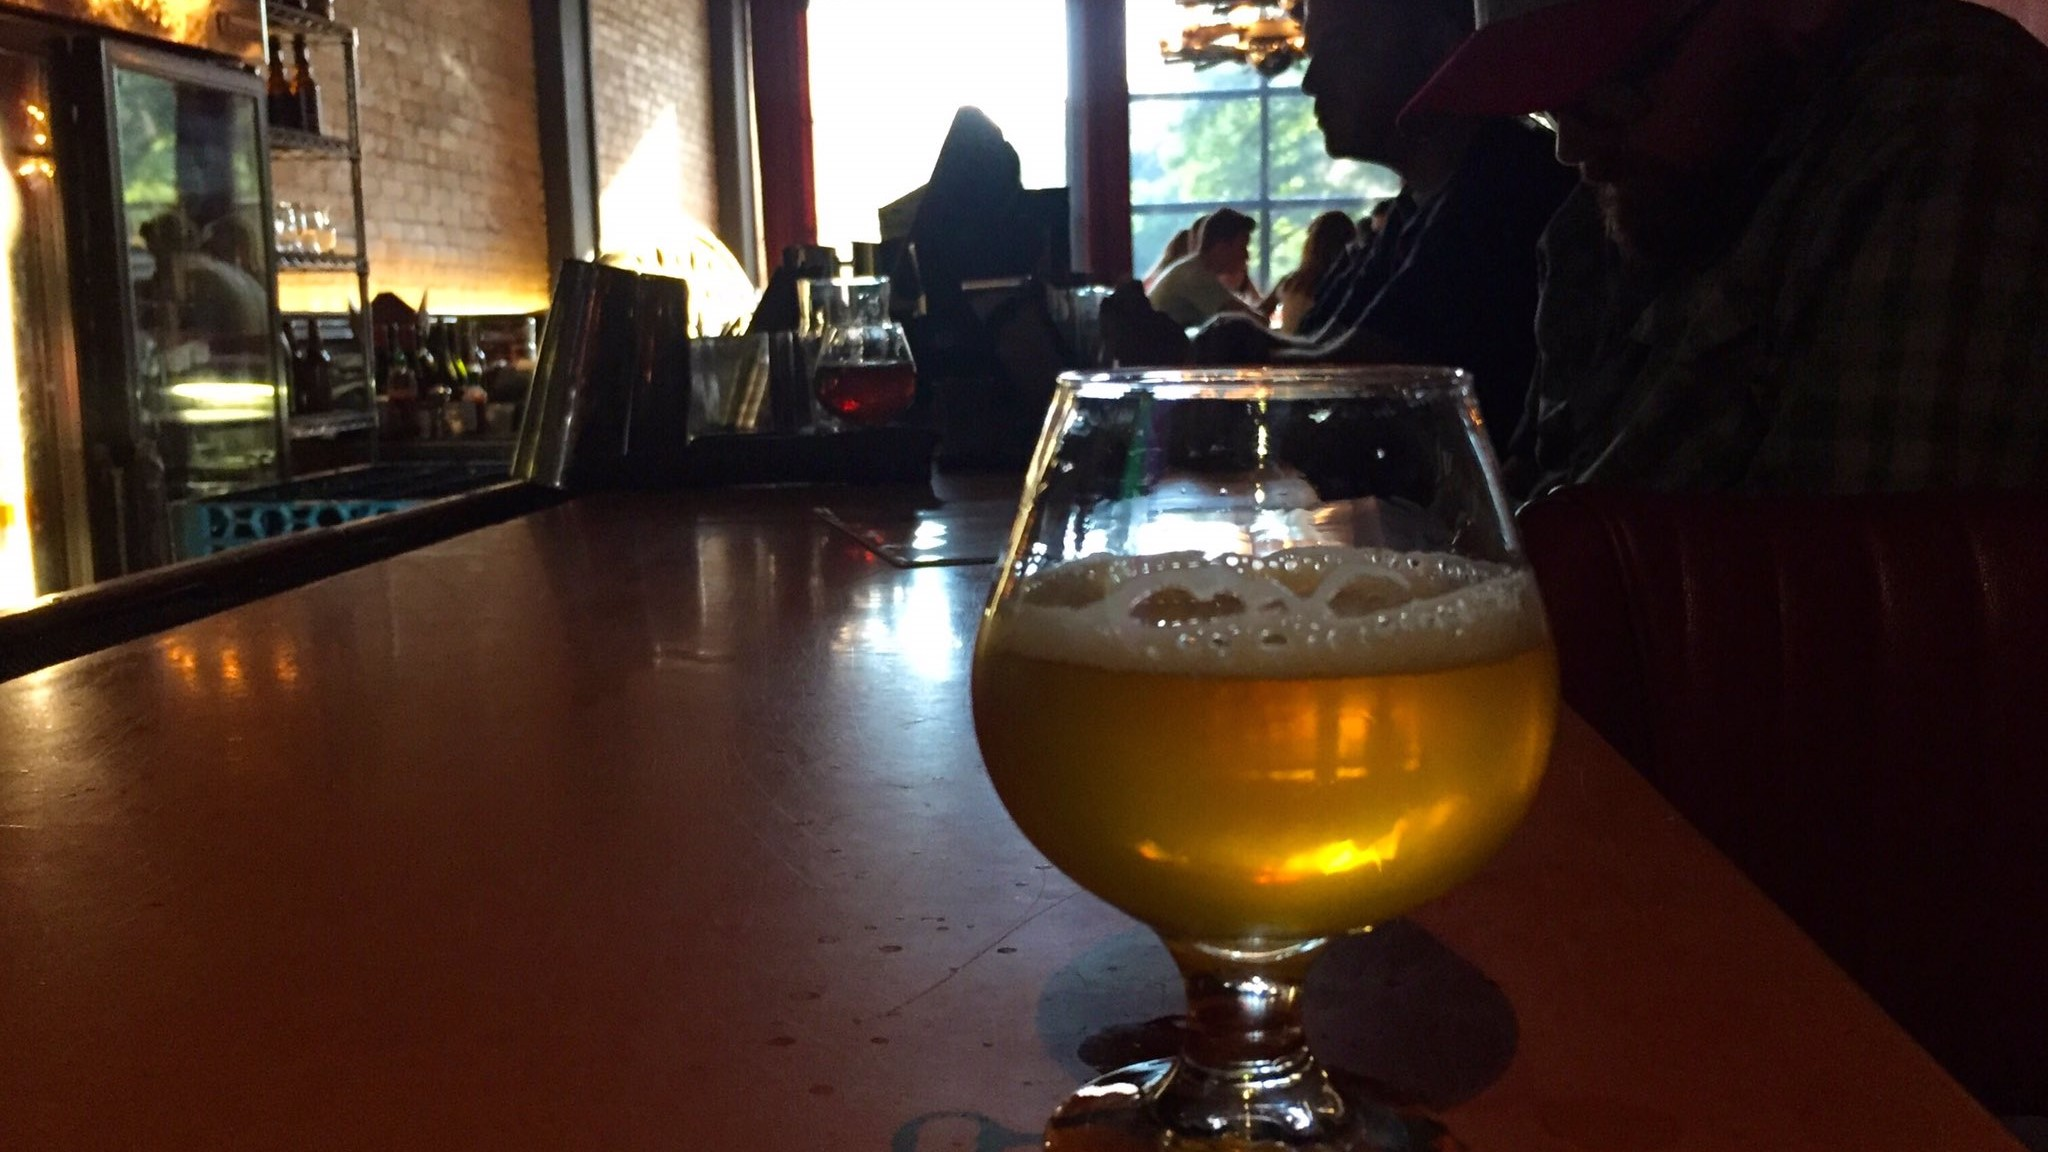 A snifter of Kout Na Sumave (which is the wrong glass choice, but nevermind) at the legendary ChurchKey in DC.